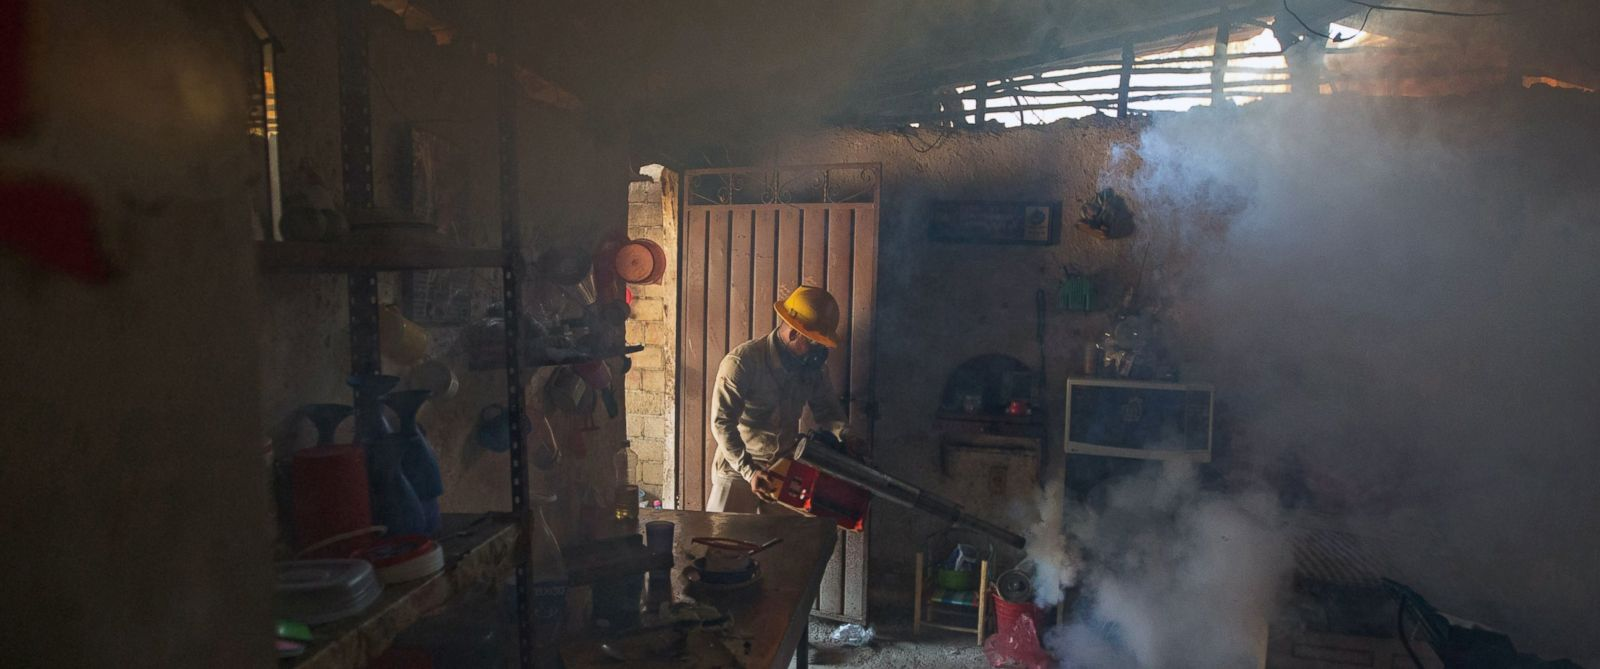 PHOTO: An employee of the Health Secretariat fumigates a home against the Aedes aegypti mosquito to prevent the spread of the Zika, Virus in Acapulco, Mexico, Feb. 2, 2016.